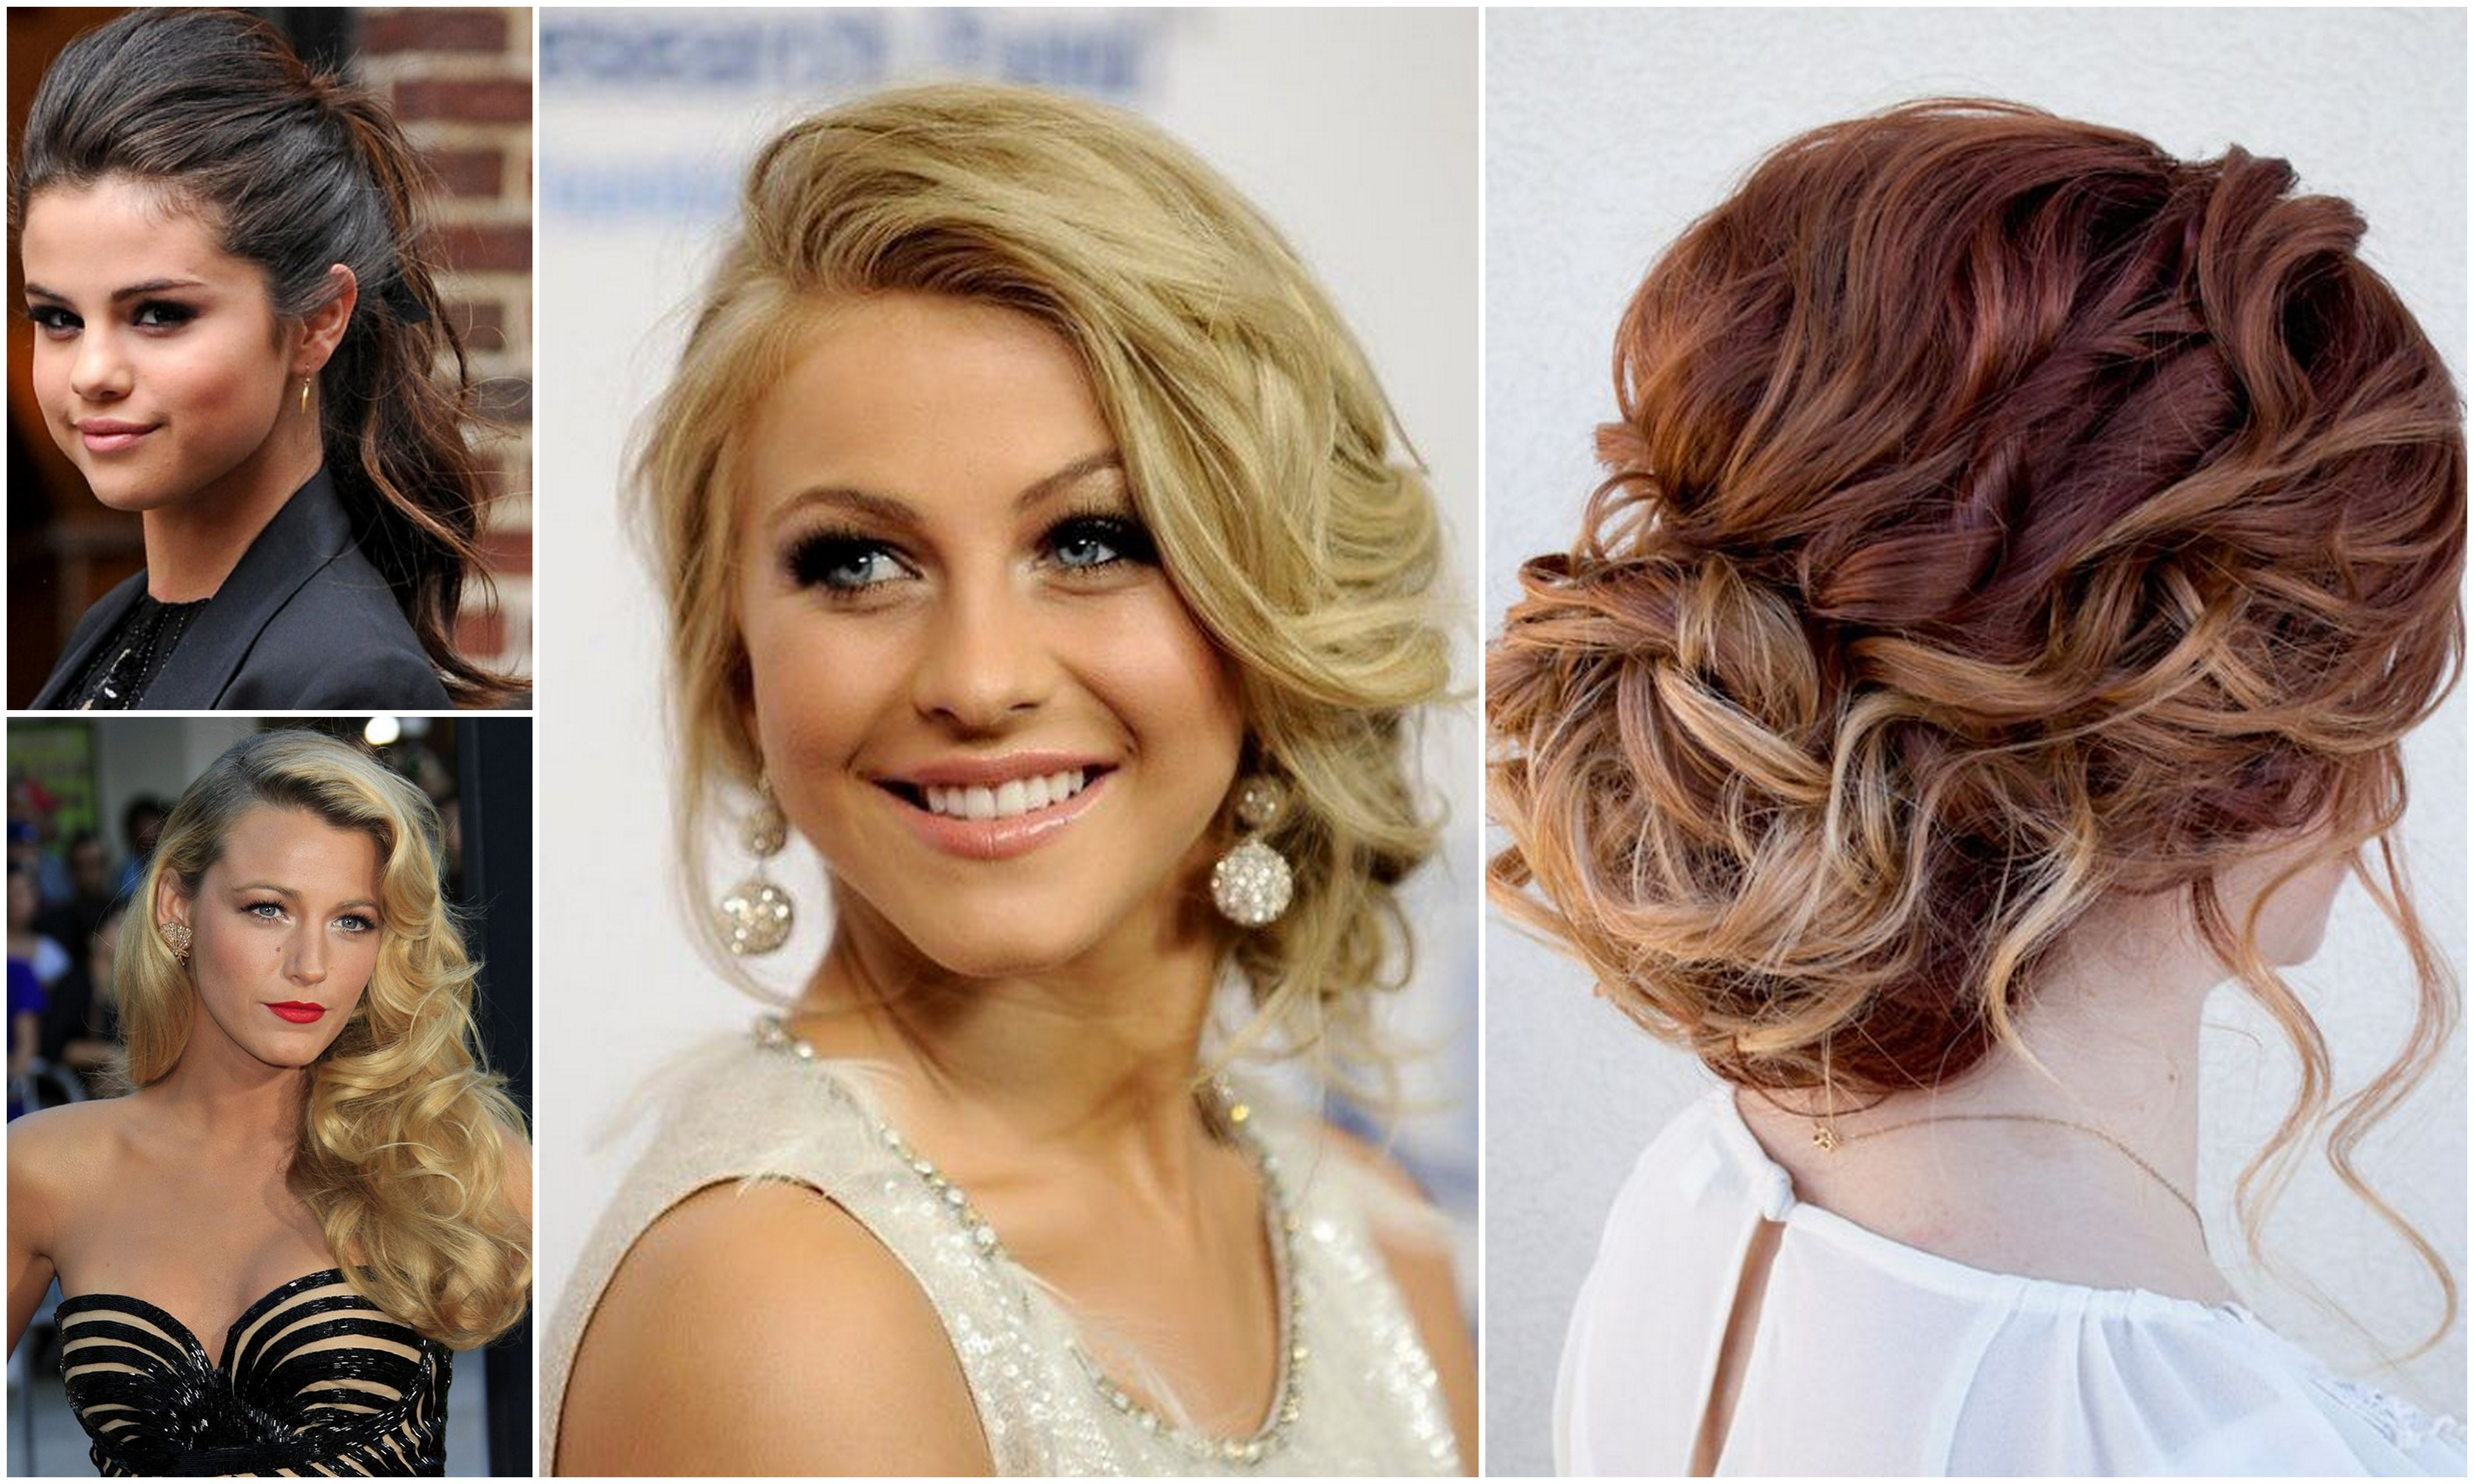 prom-spiration: hair and makeup ideas - love, me photography